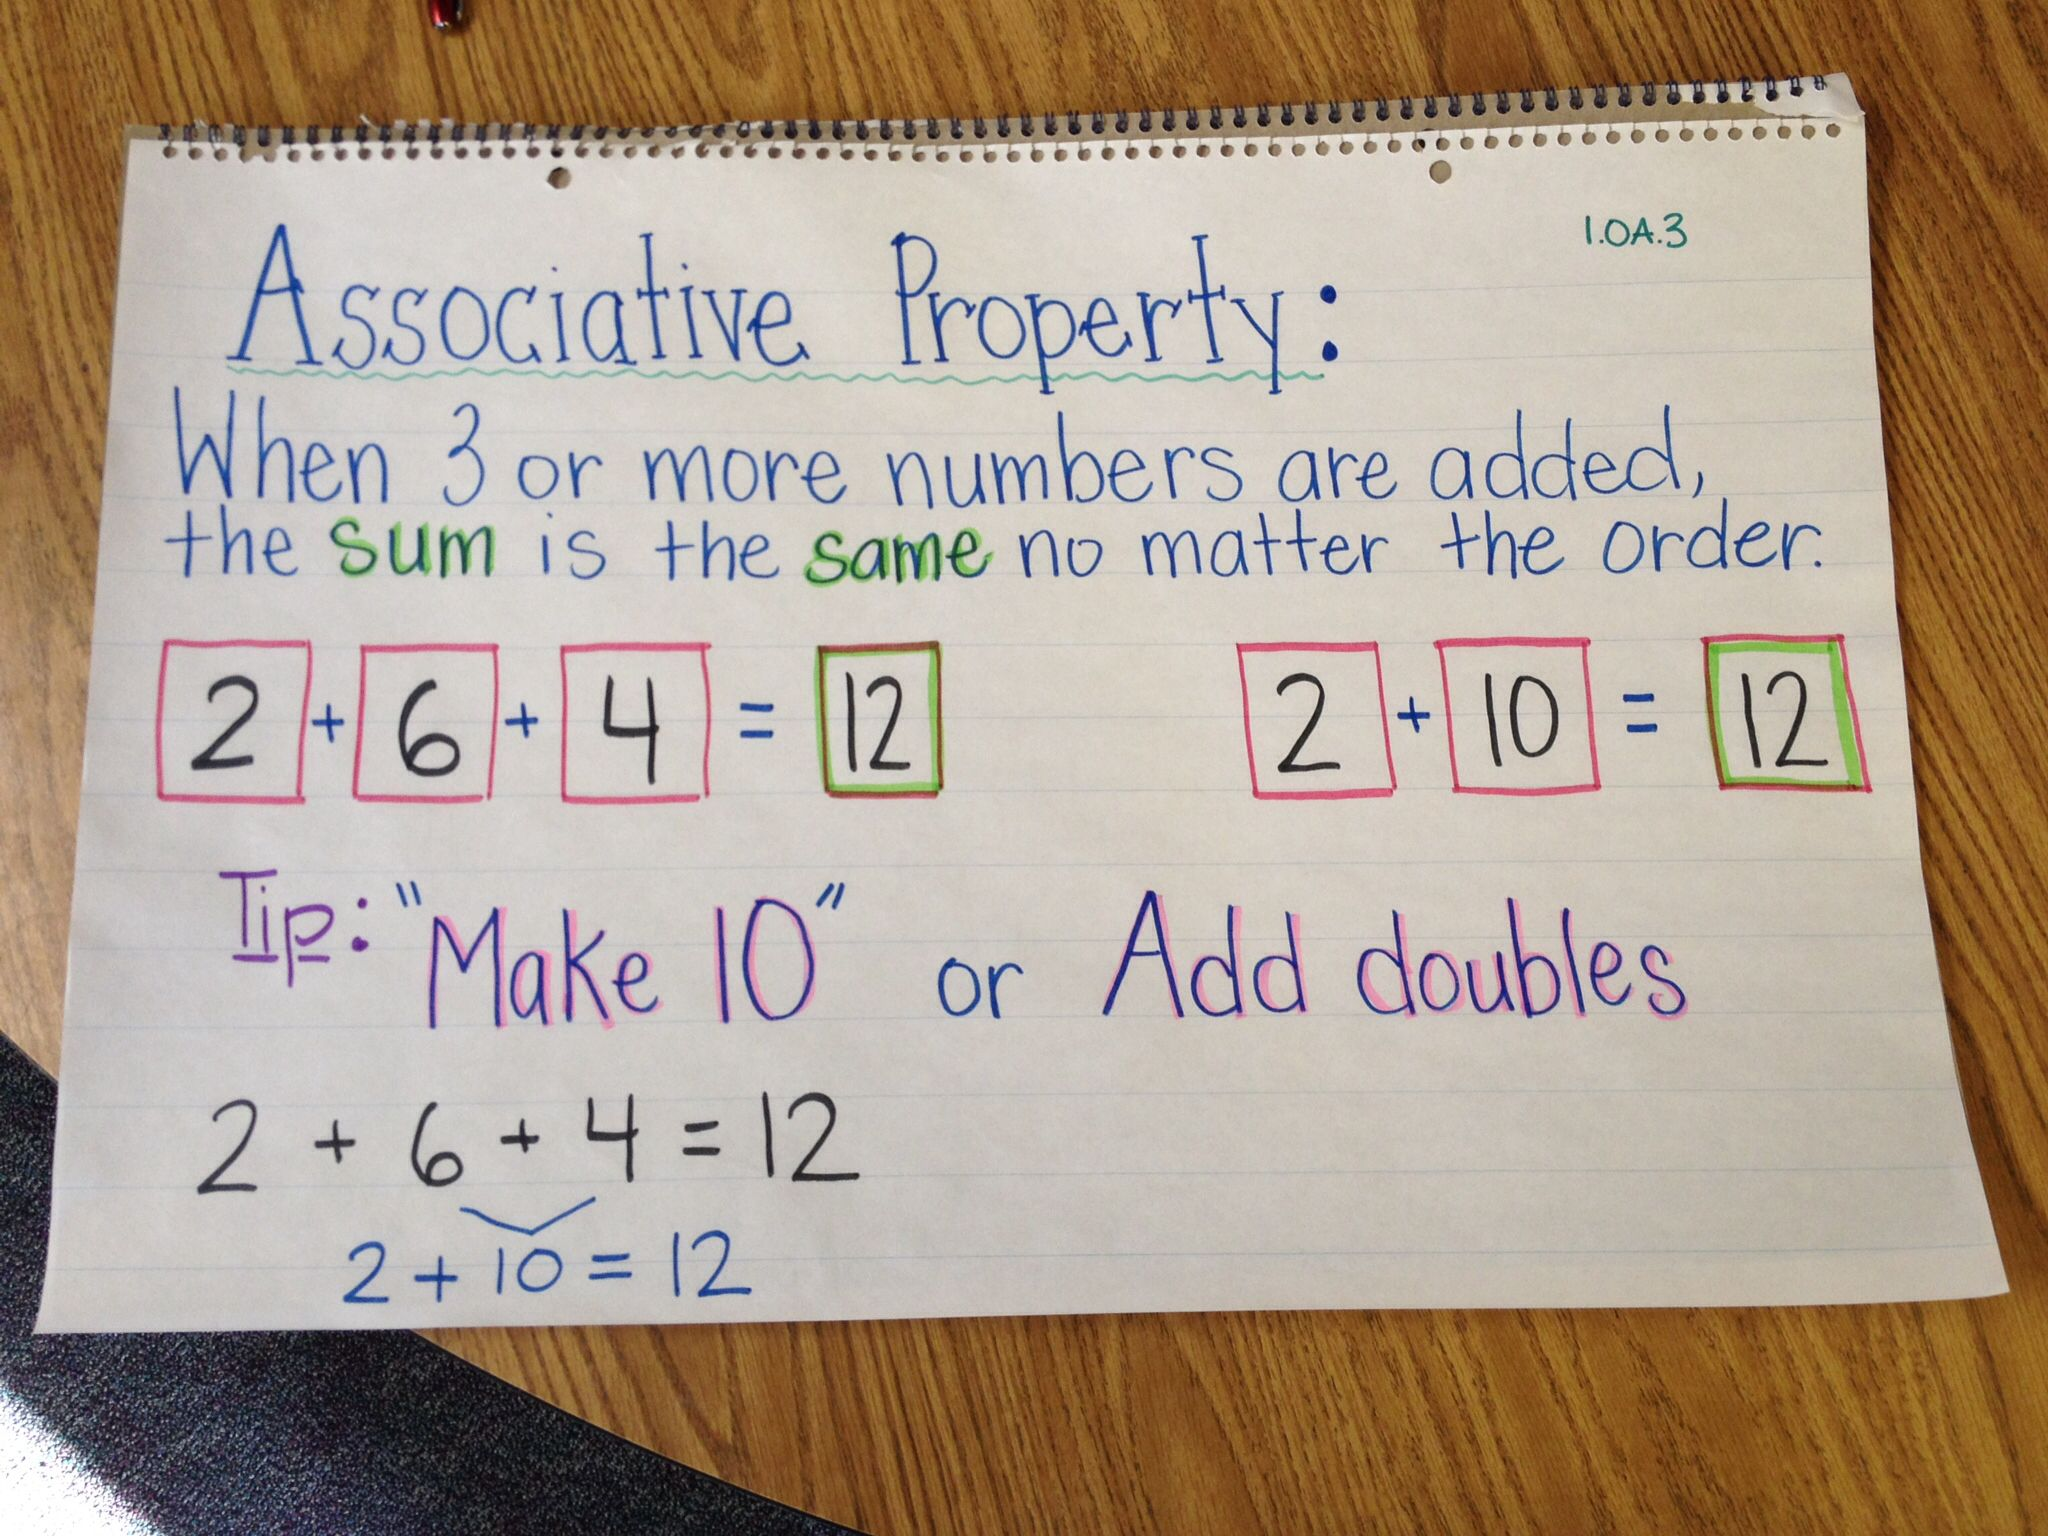 Pin By Kathy Patten On Education Math School Associative Property Anchor Charts Associative property of addition 3rd